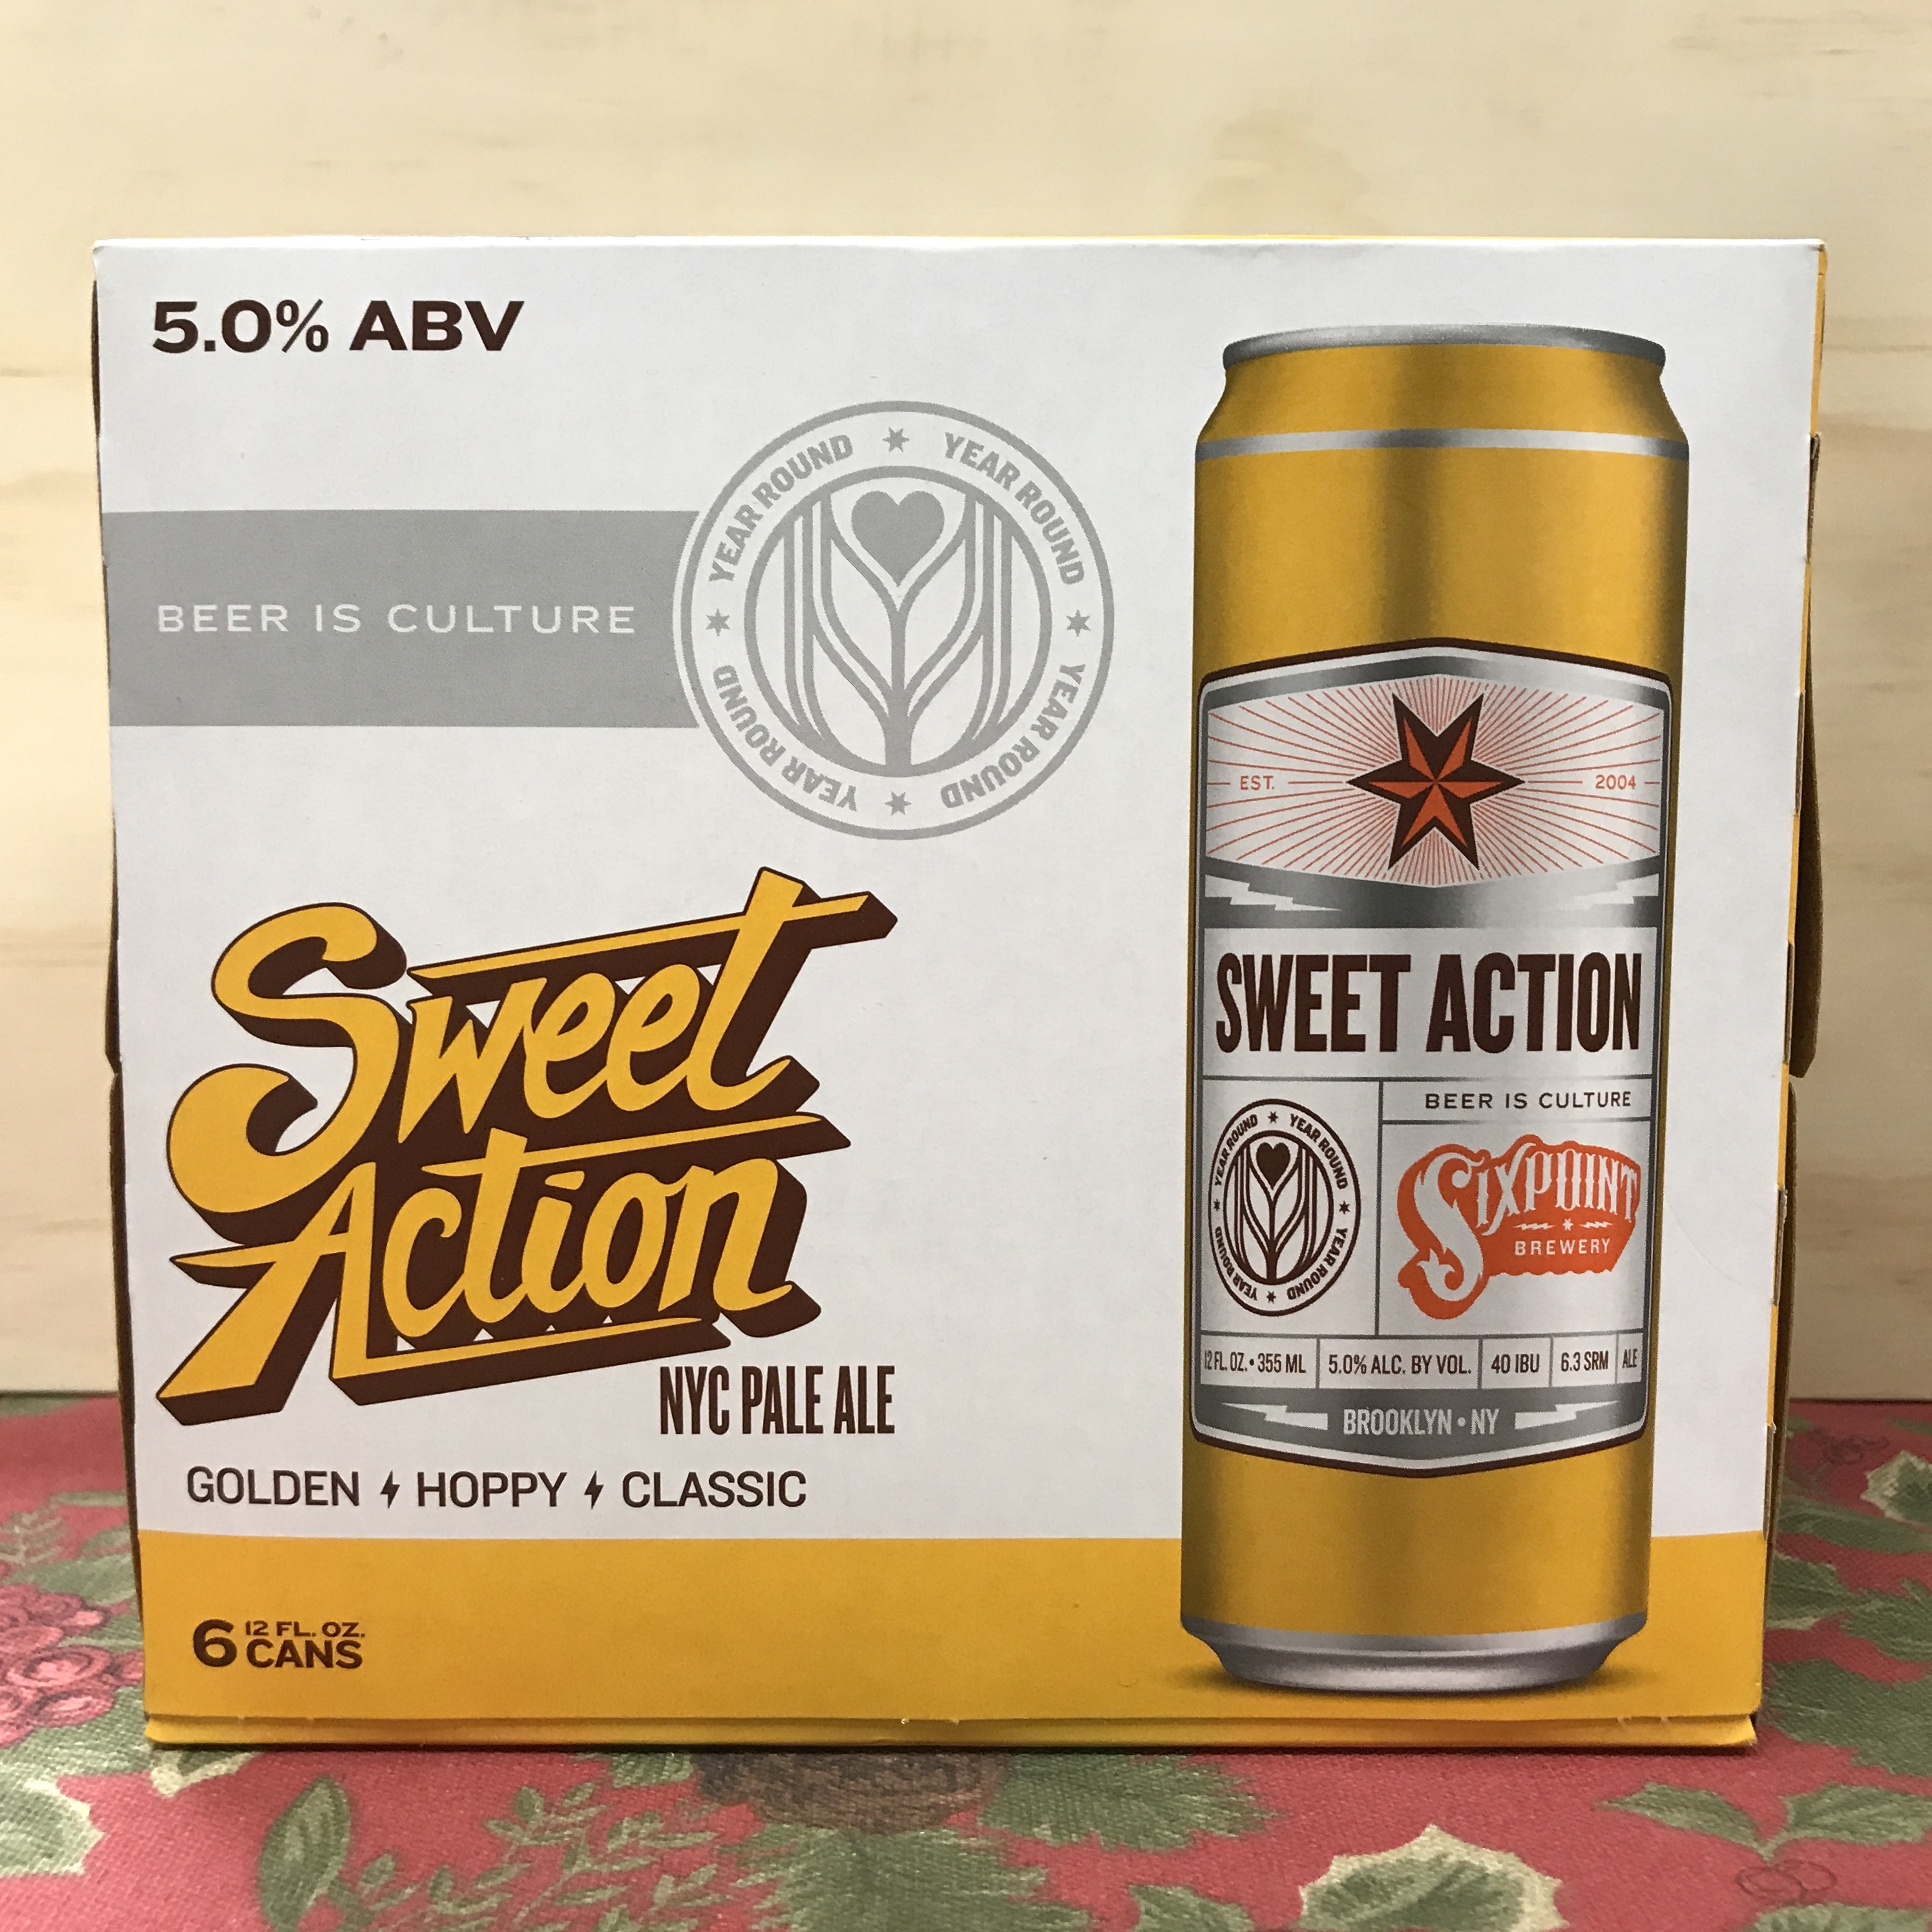 Sixpoint Sweet Action NYC Pale Ale 6 x 12 oz cans